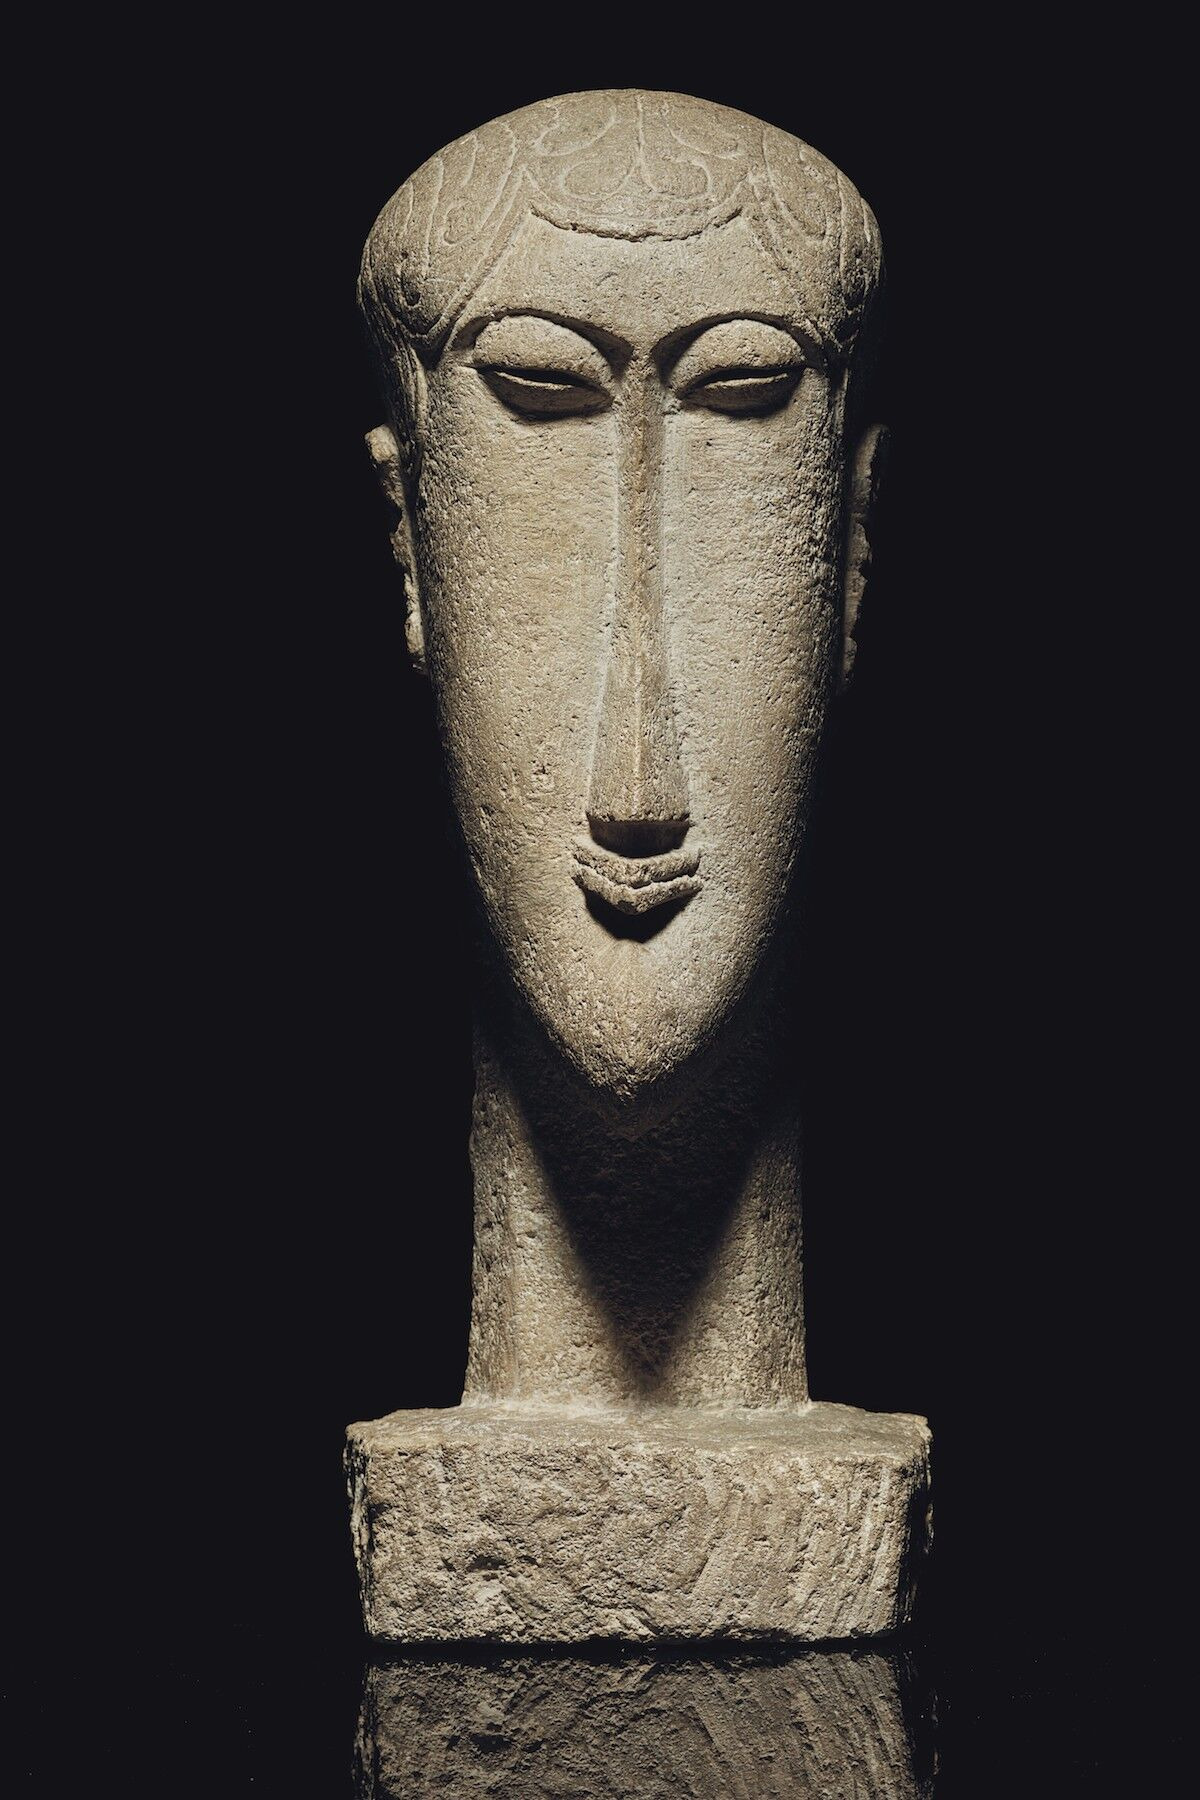 Amedeo Modigliani, Tête, ca. 1911–12, limestone. Est. $30 million–$40 million. Courtesy Christie's.